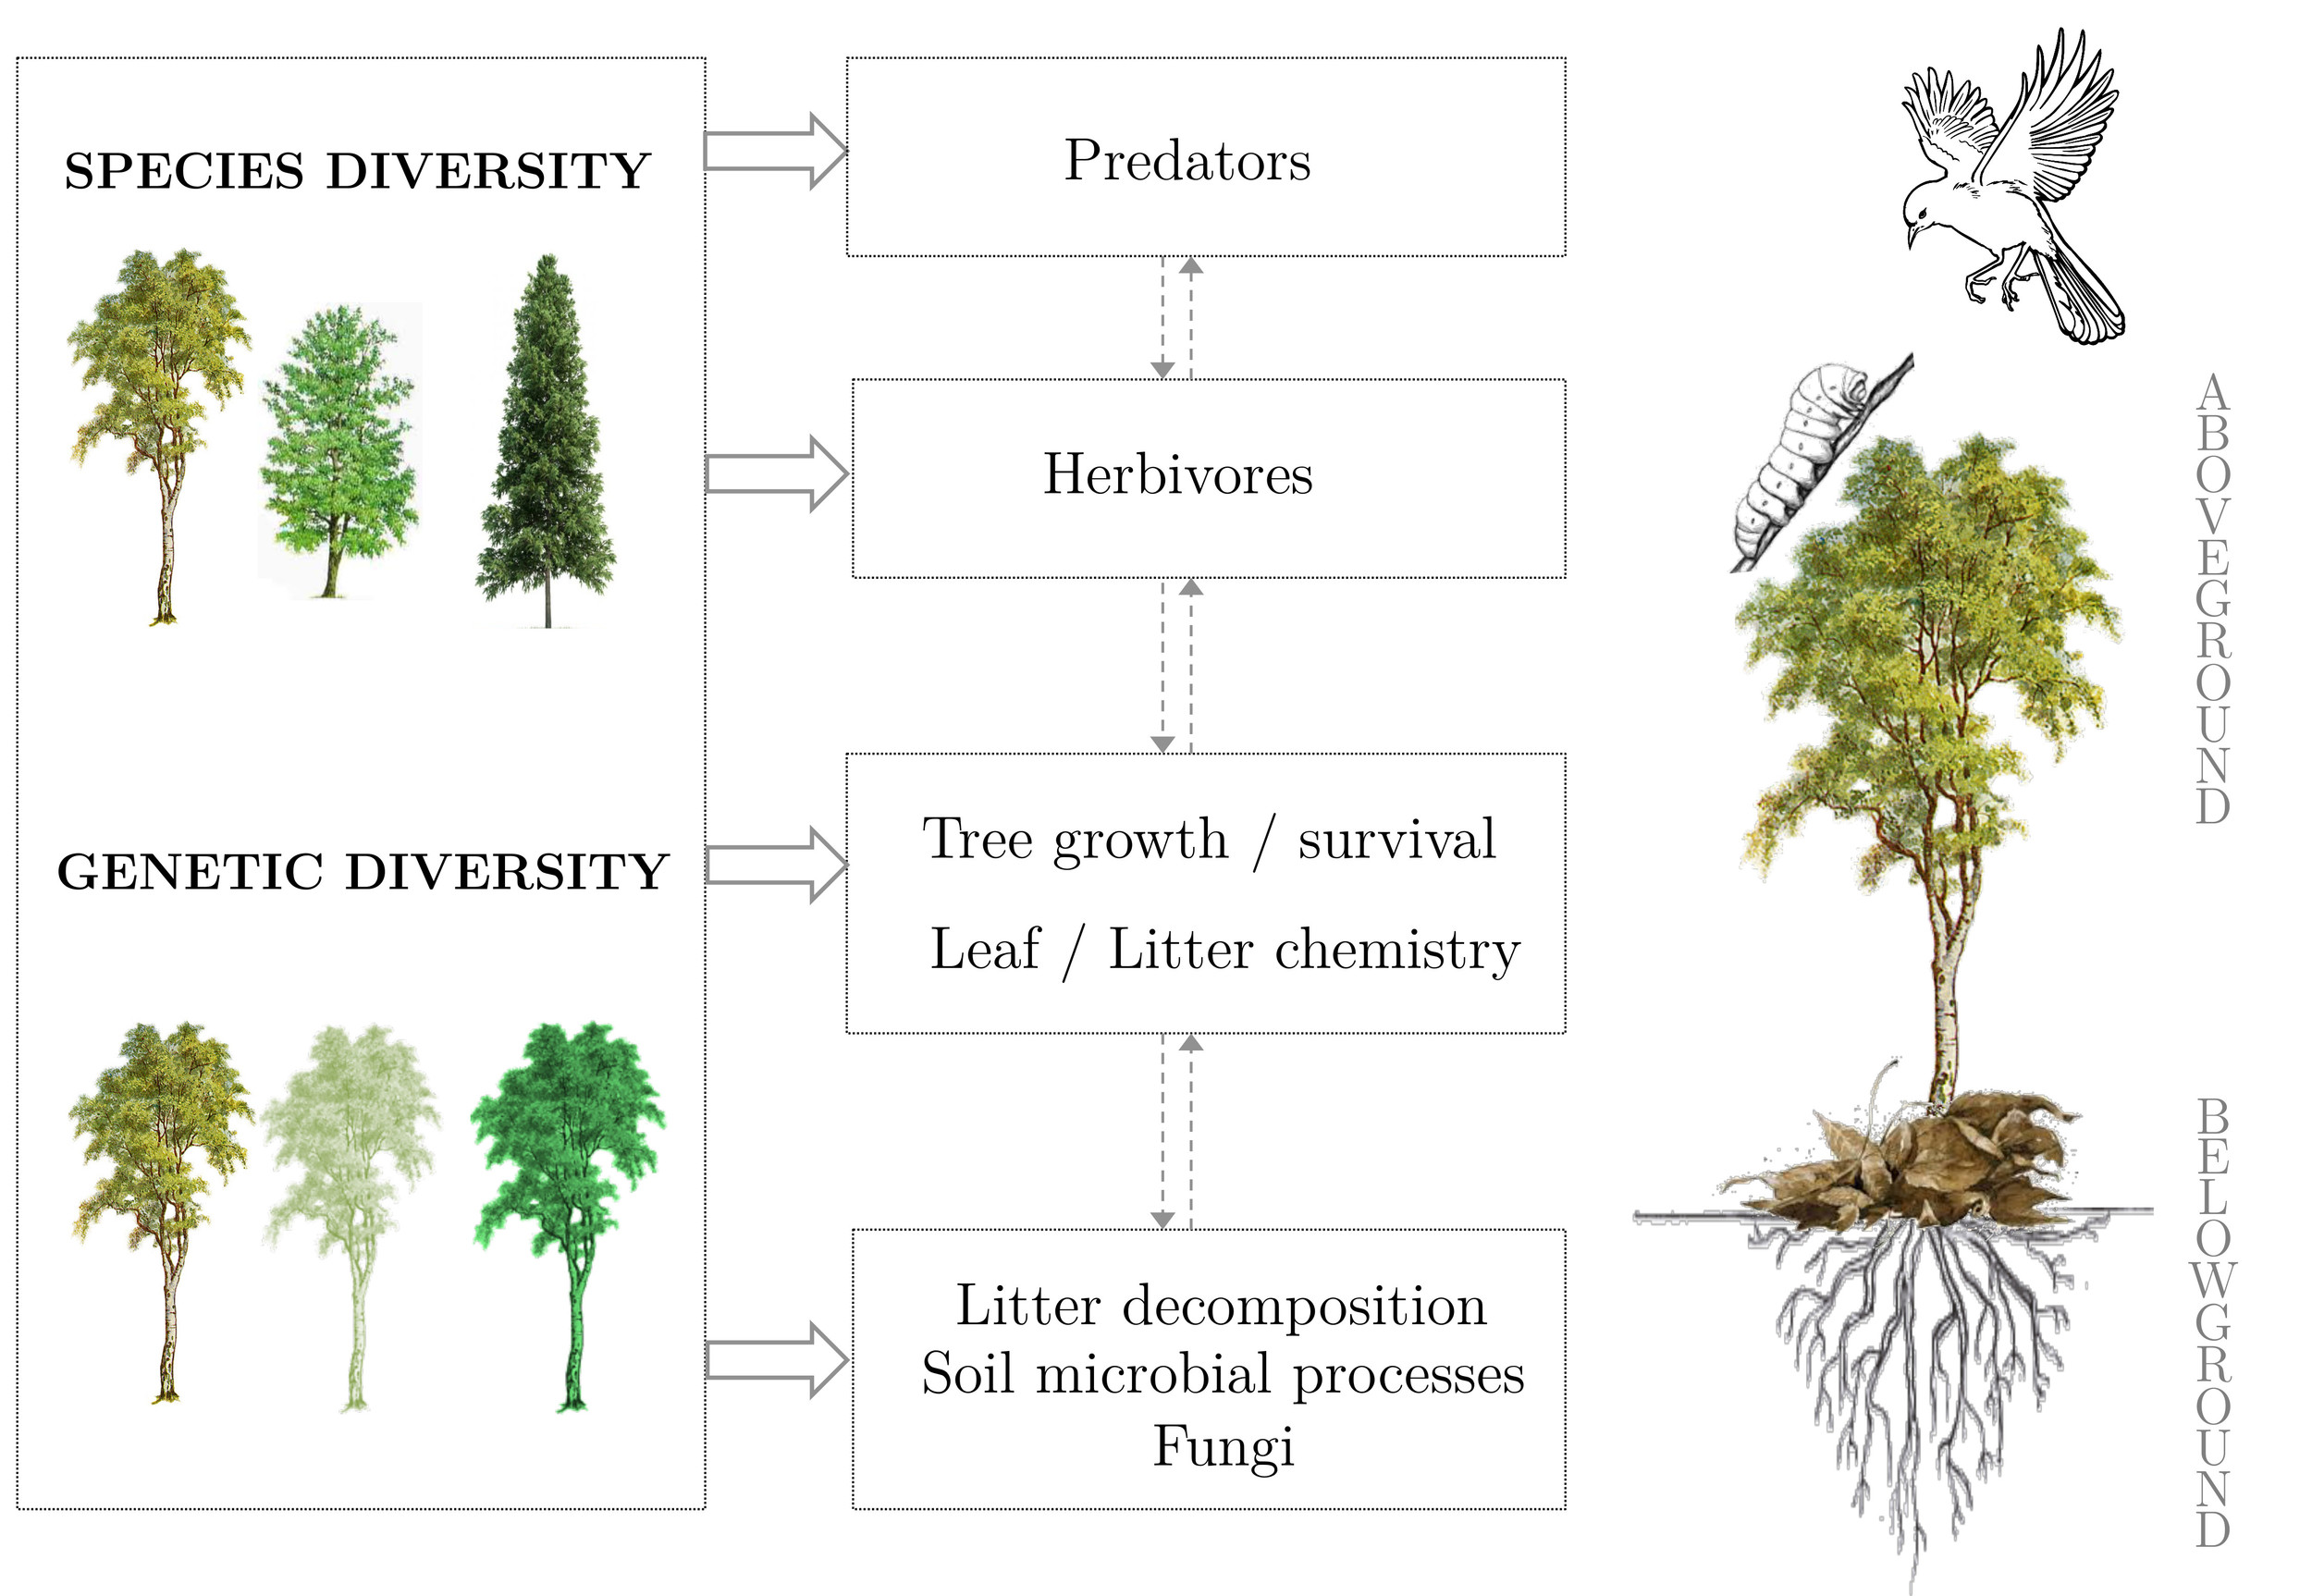 Figure 1 : Direct (solid arrows) and indirect (dashed arrows) effects of tree species and genetic diversity on above- and belowground processes.